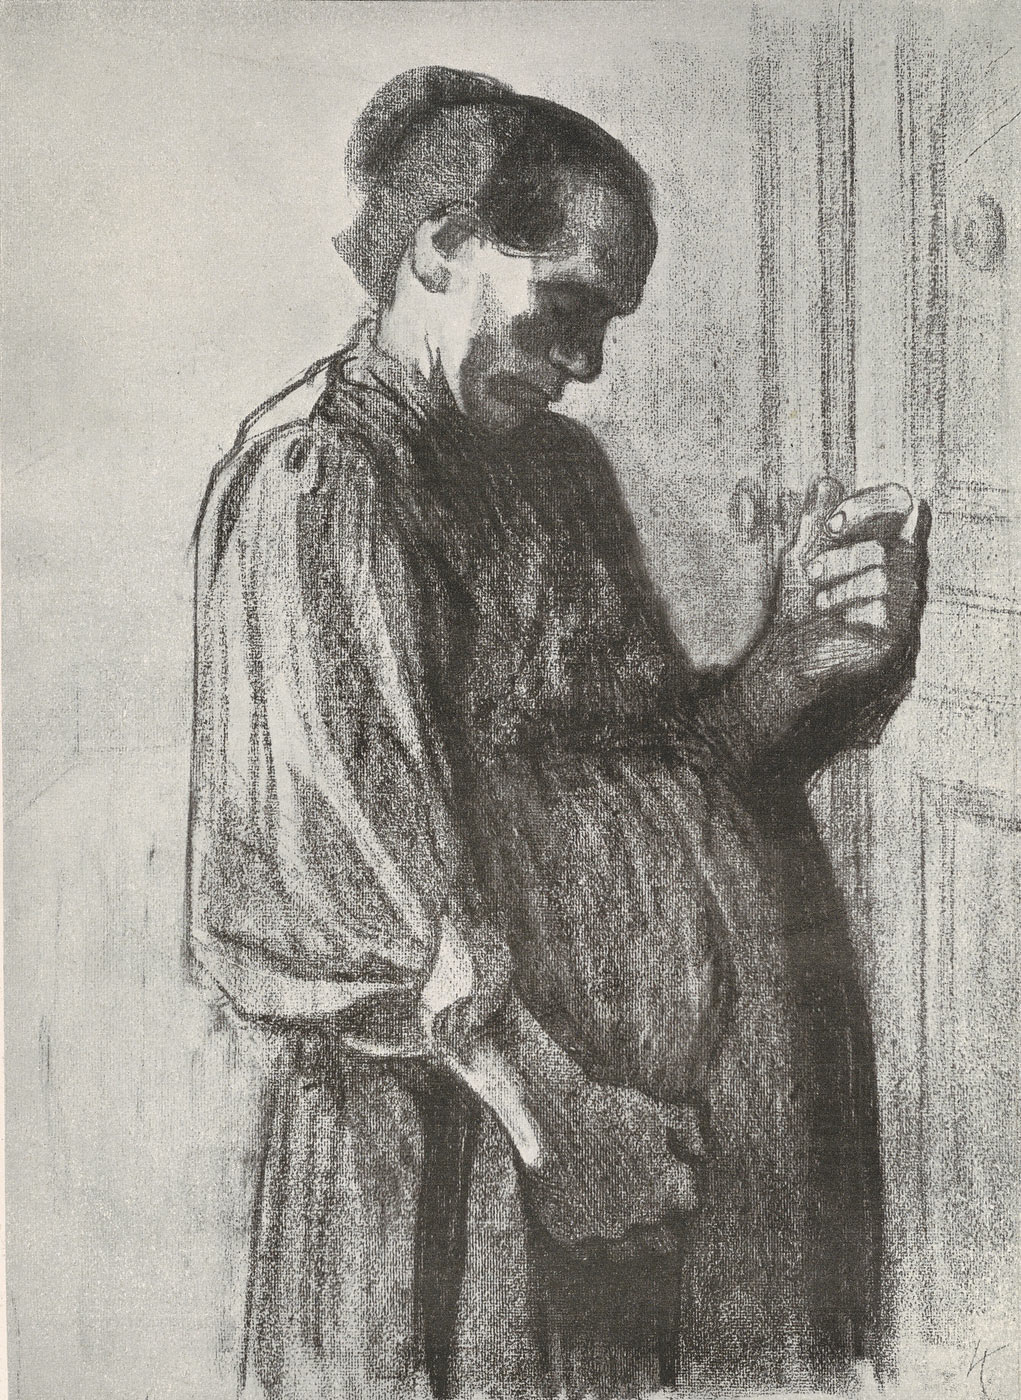 A pregnant woman knocks on a door